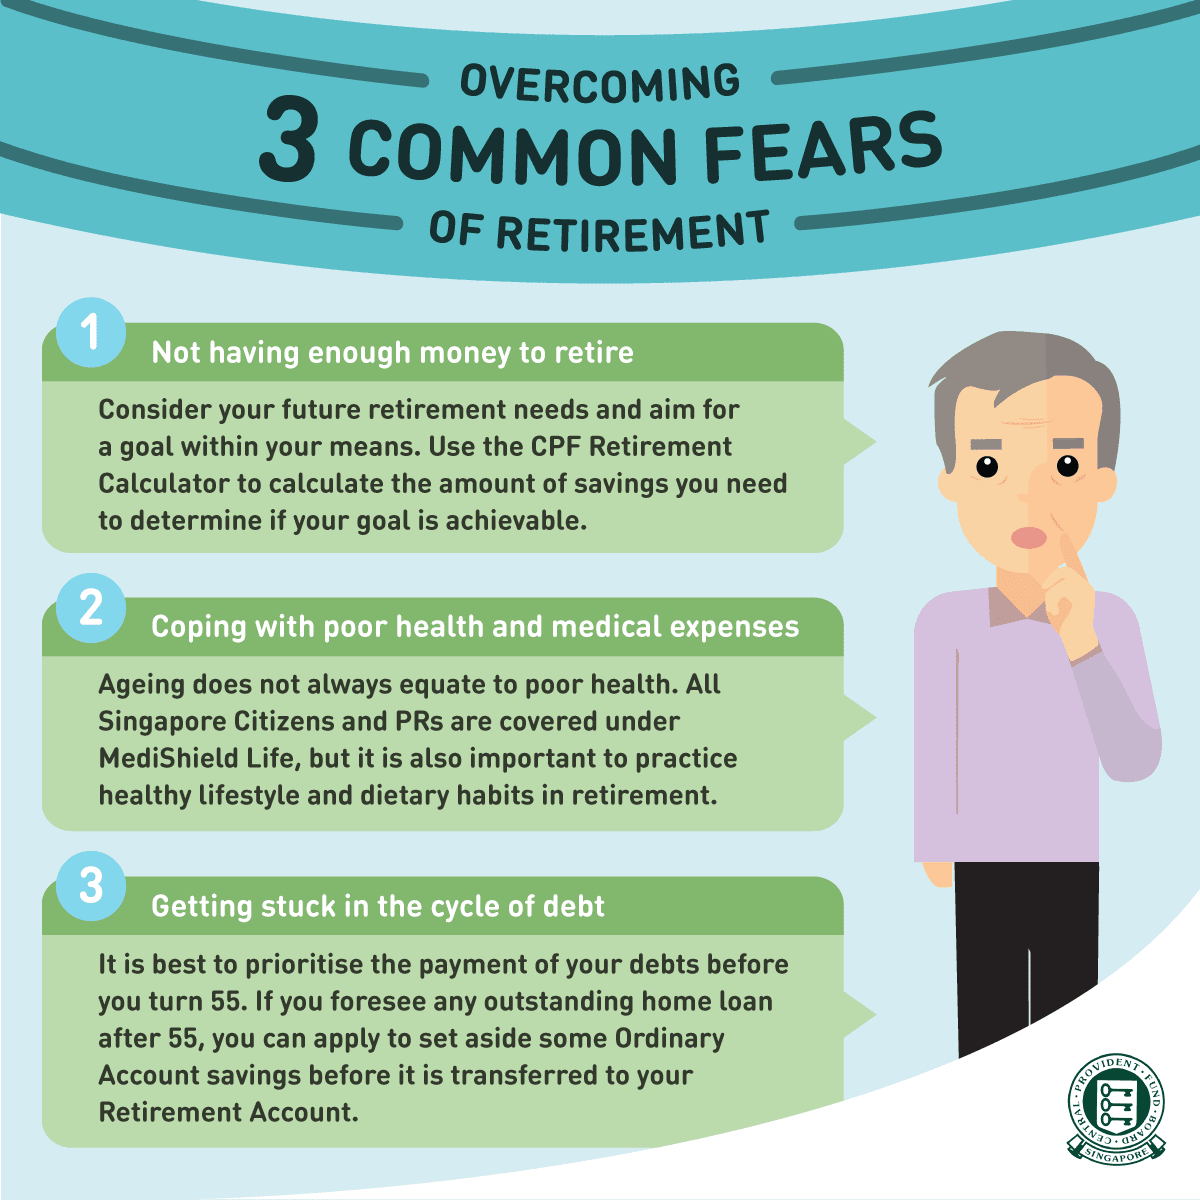 3 common fears of retirement